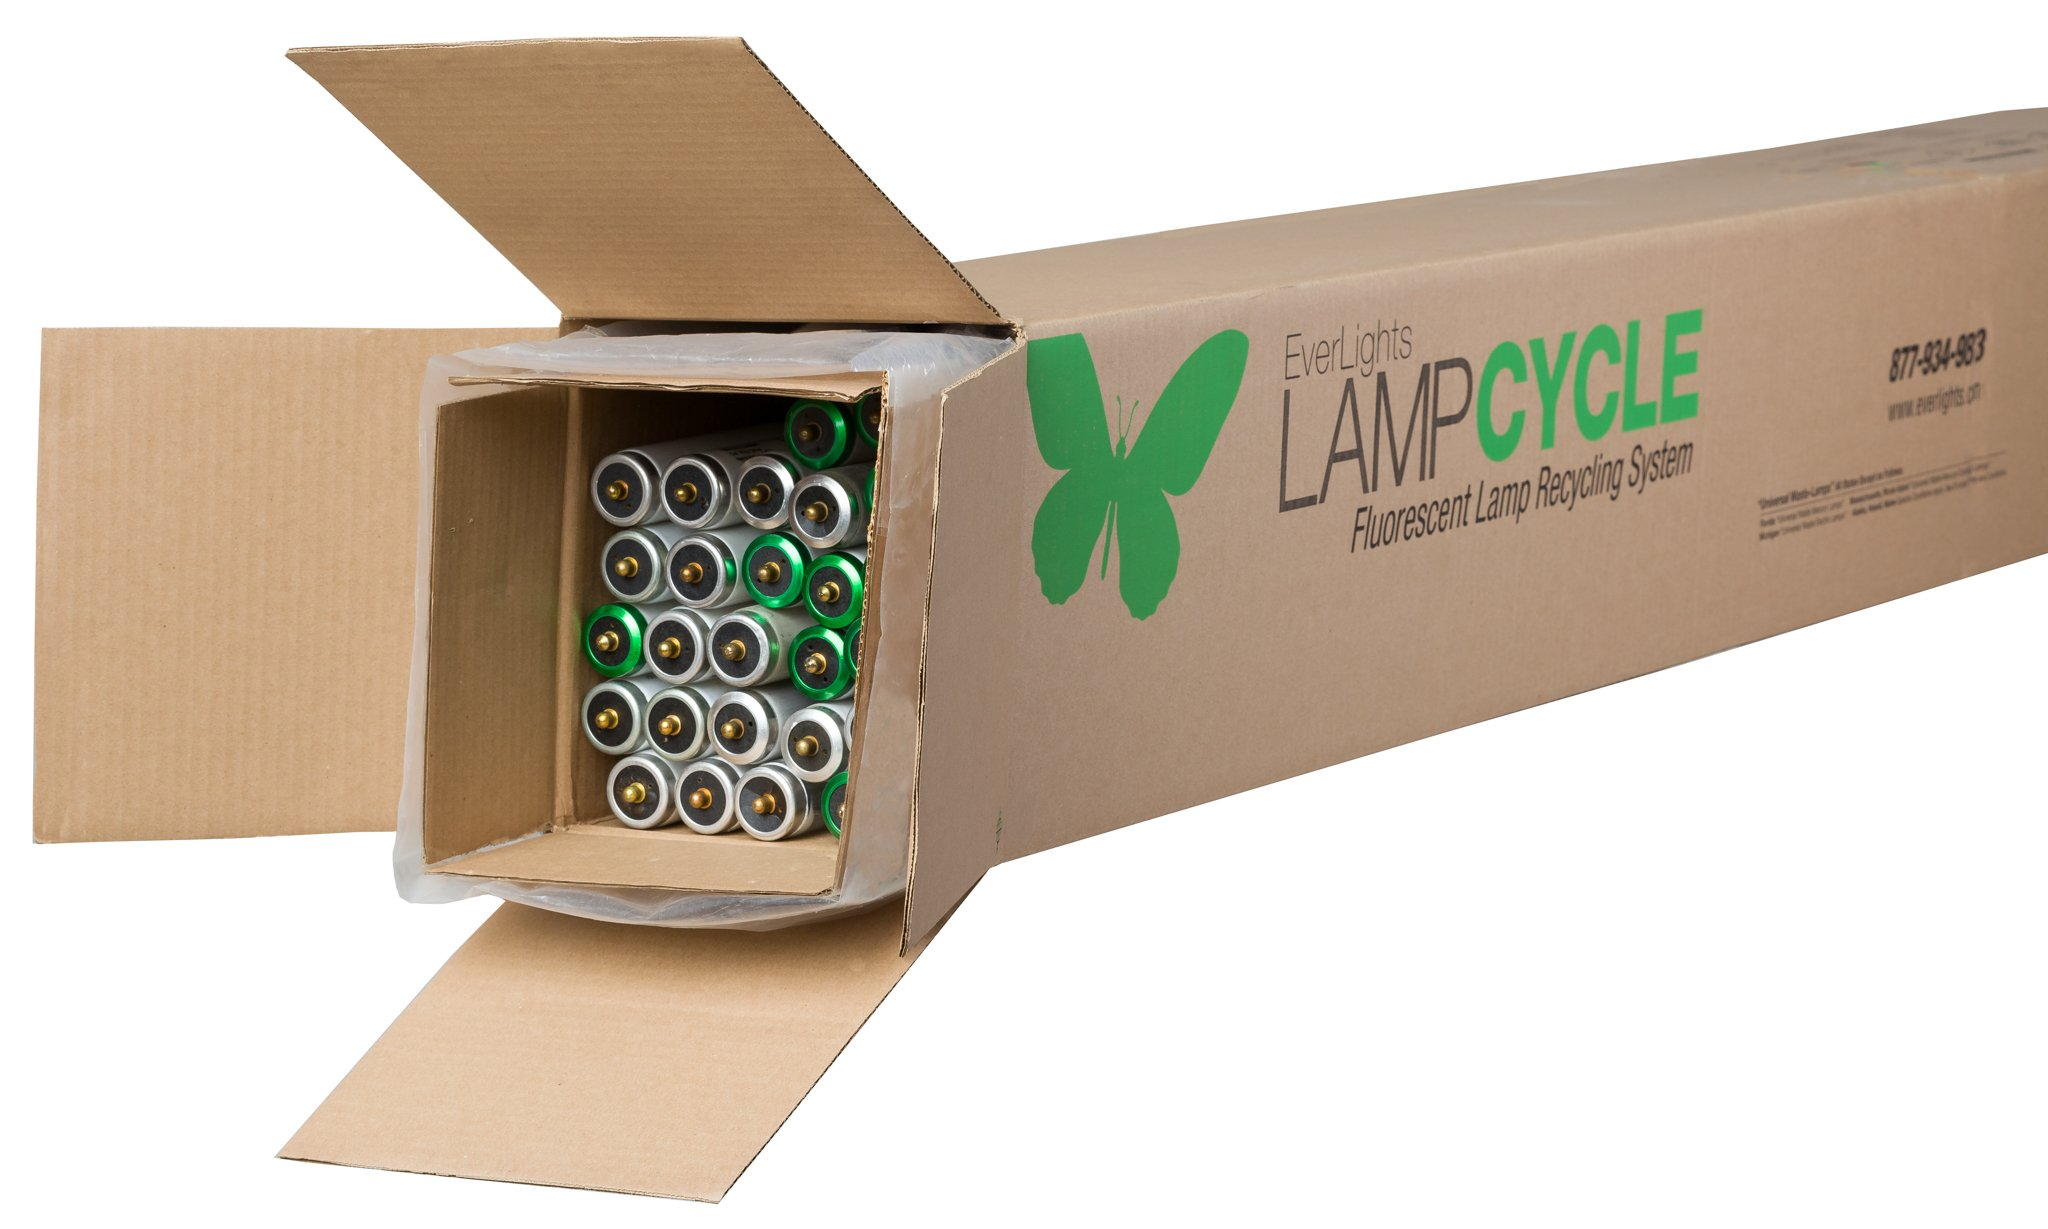 EverLights R8T836 LampCycle 8-Foot Linear Fluorescent Tube Recycling Kit, Extra-Large